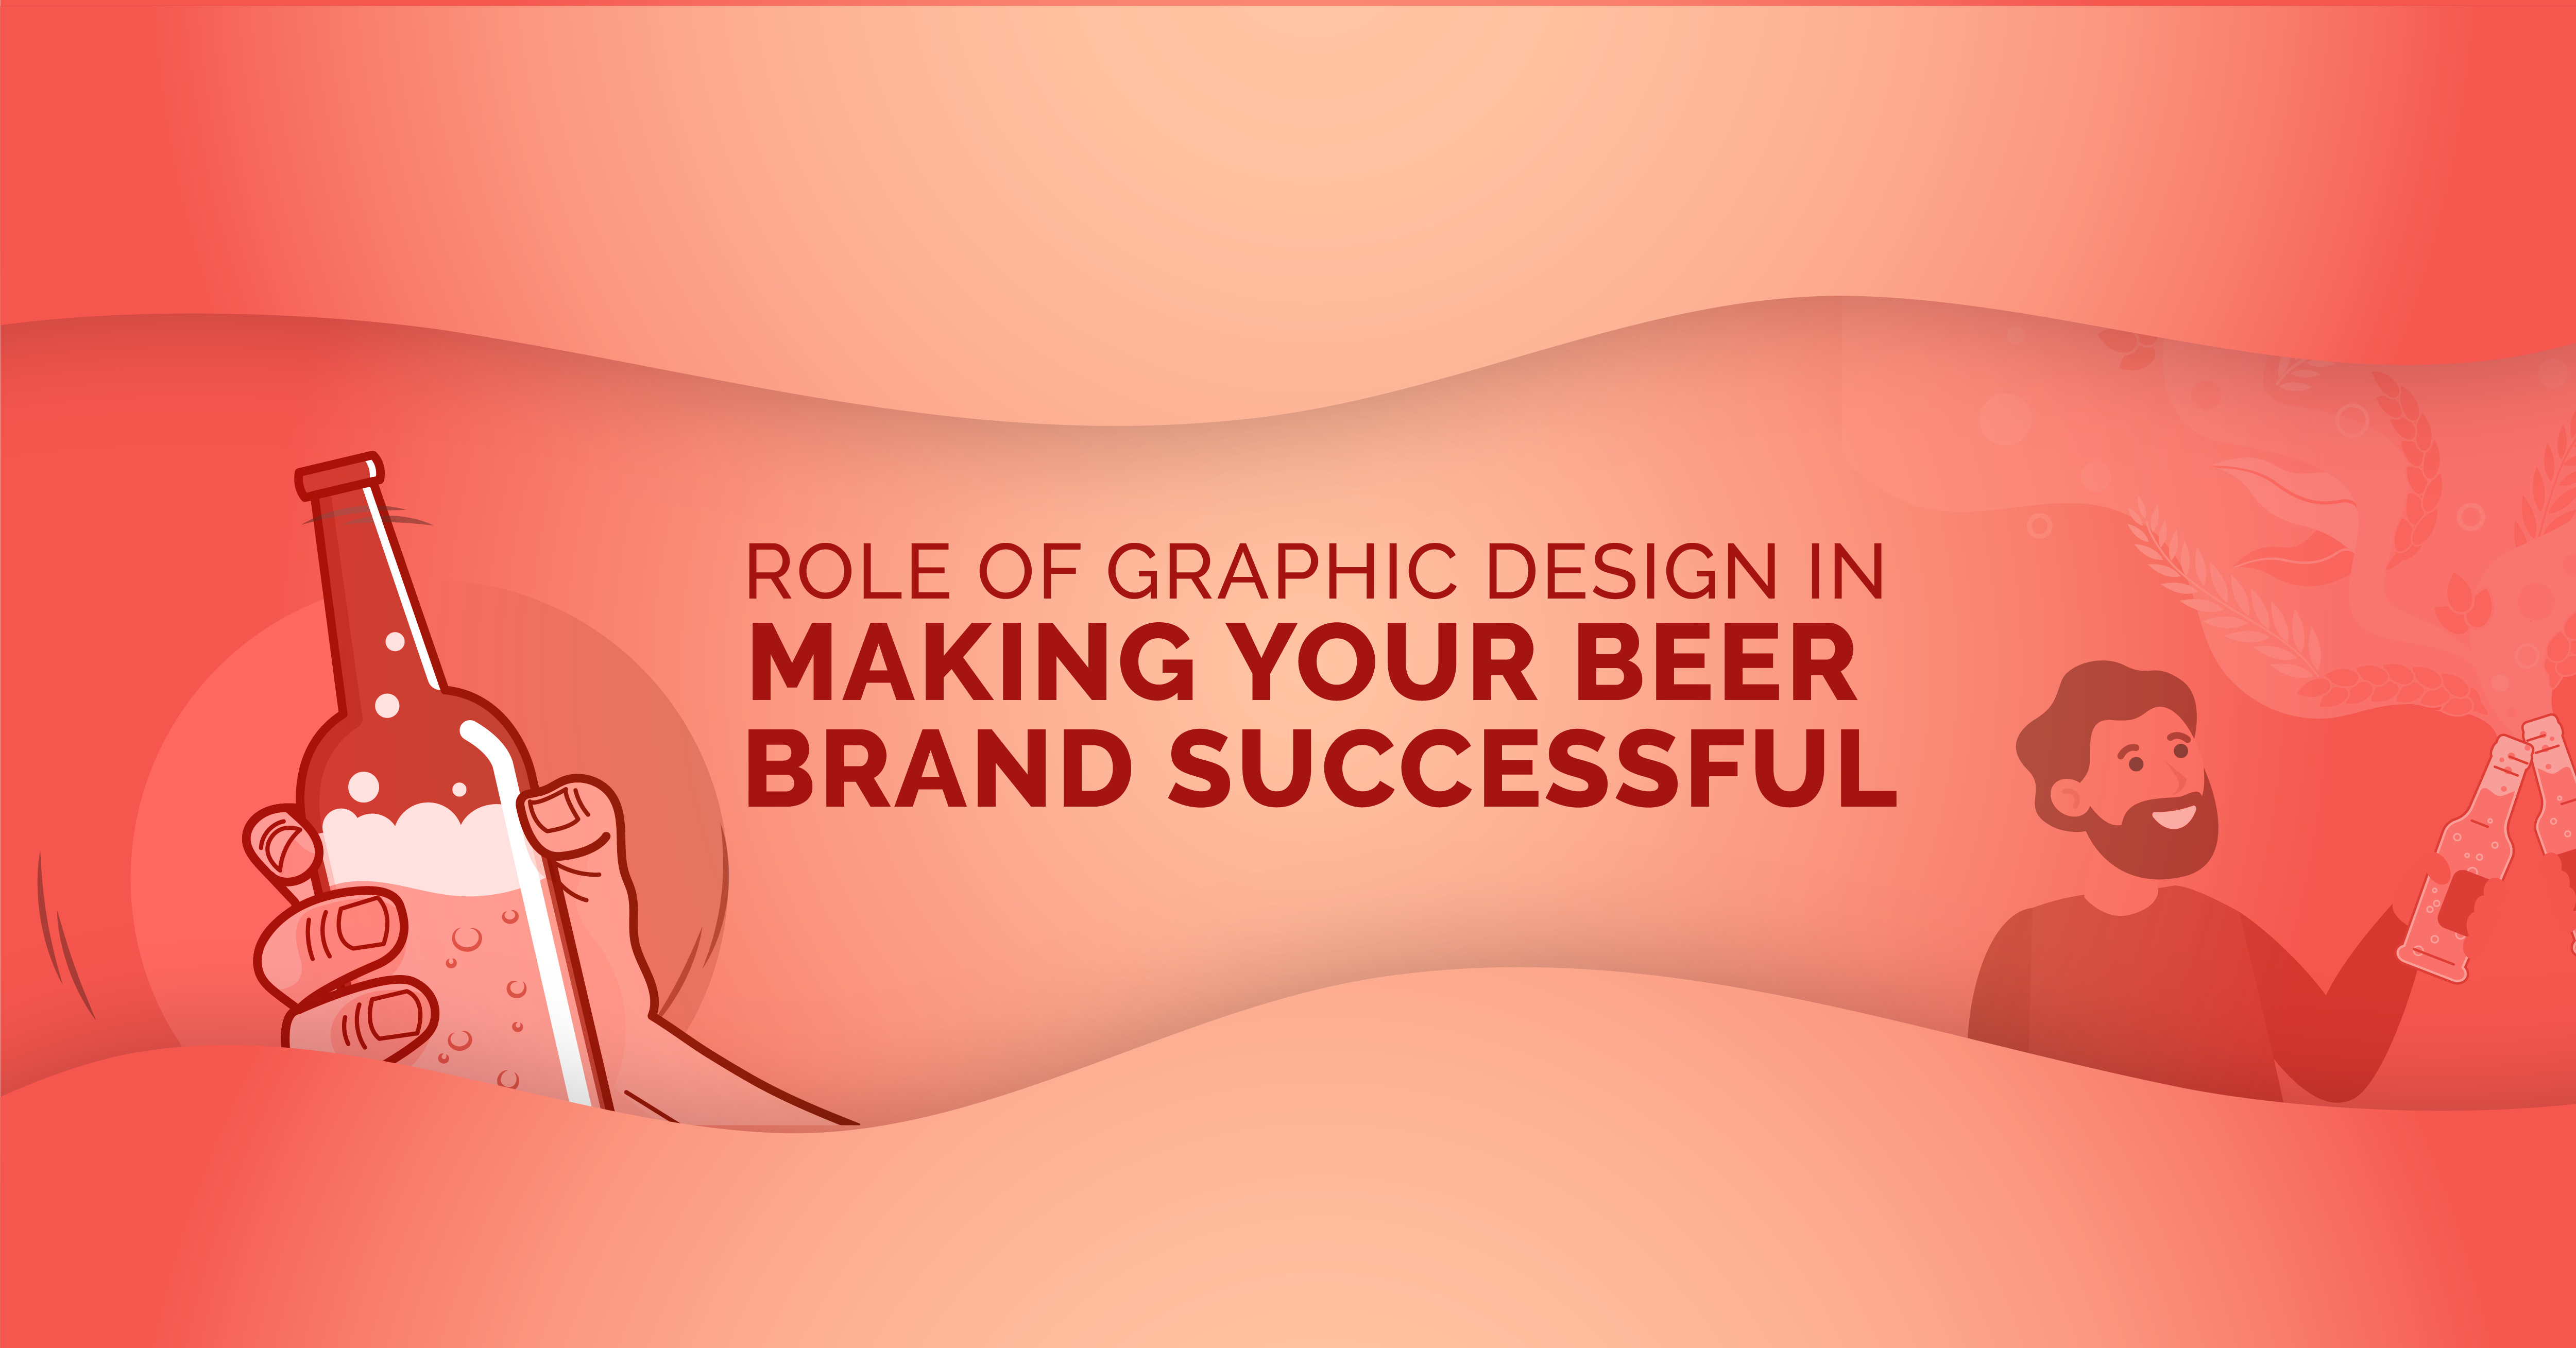 Role of graphic design in making your beer brand successful